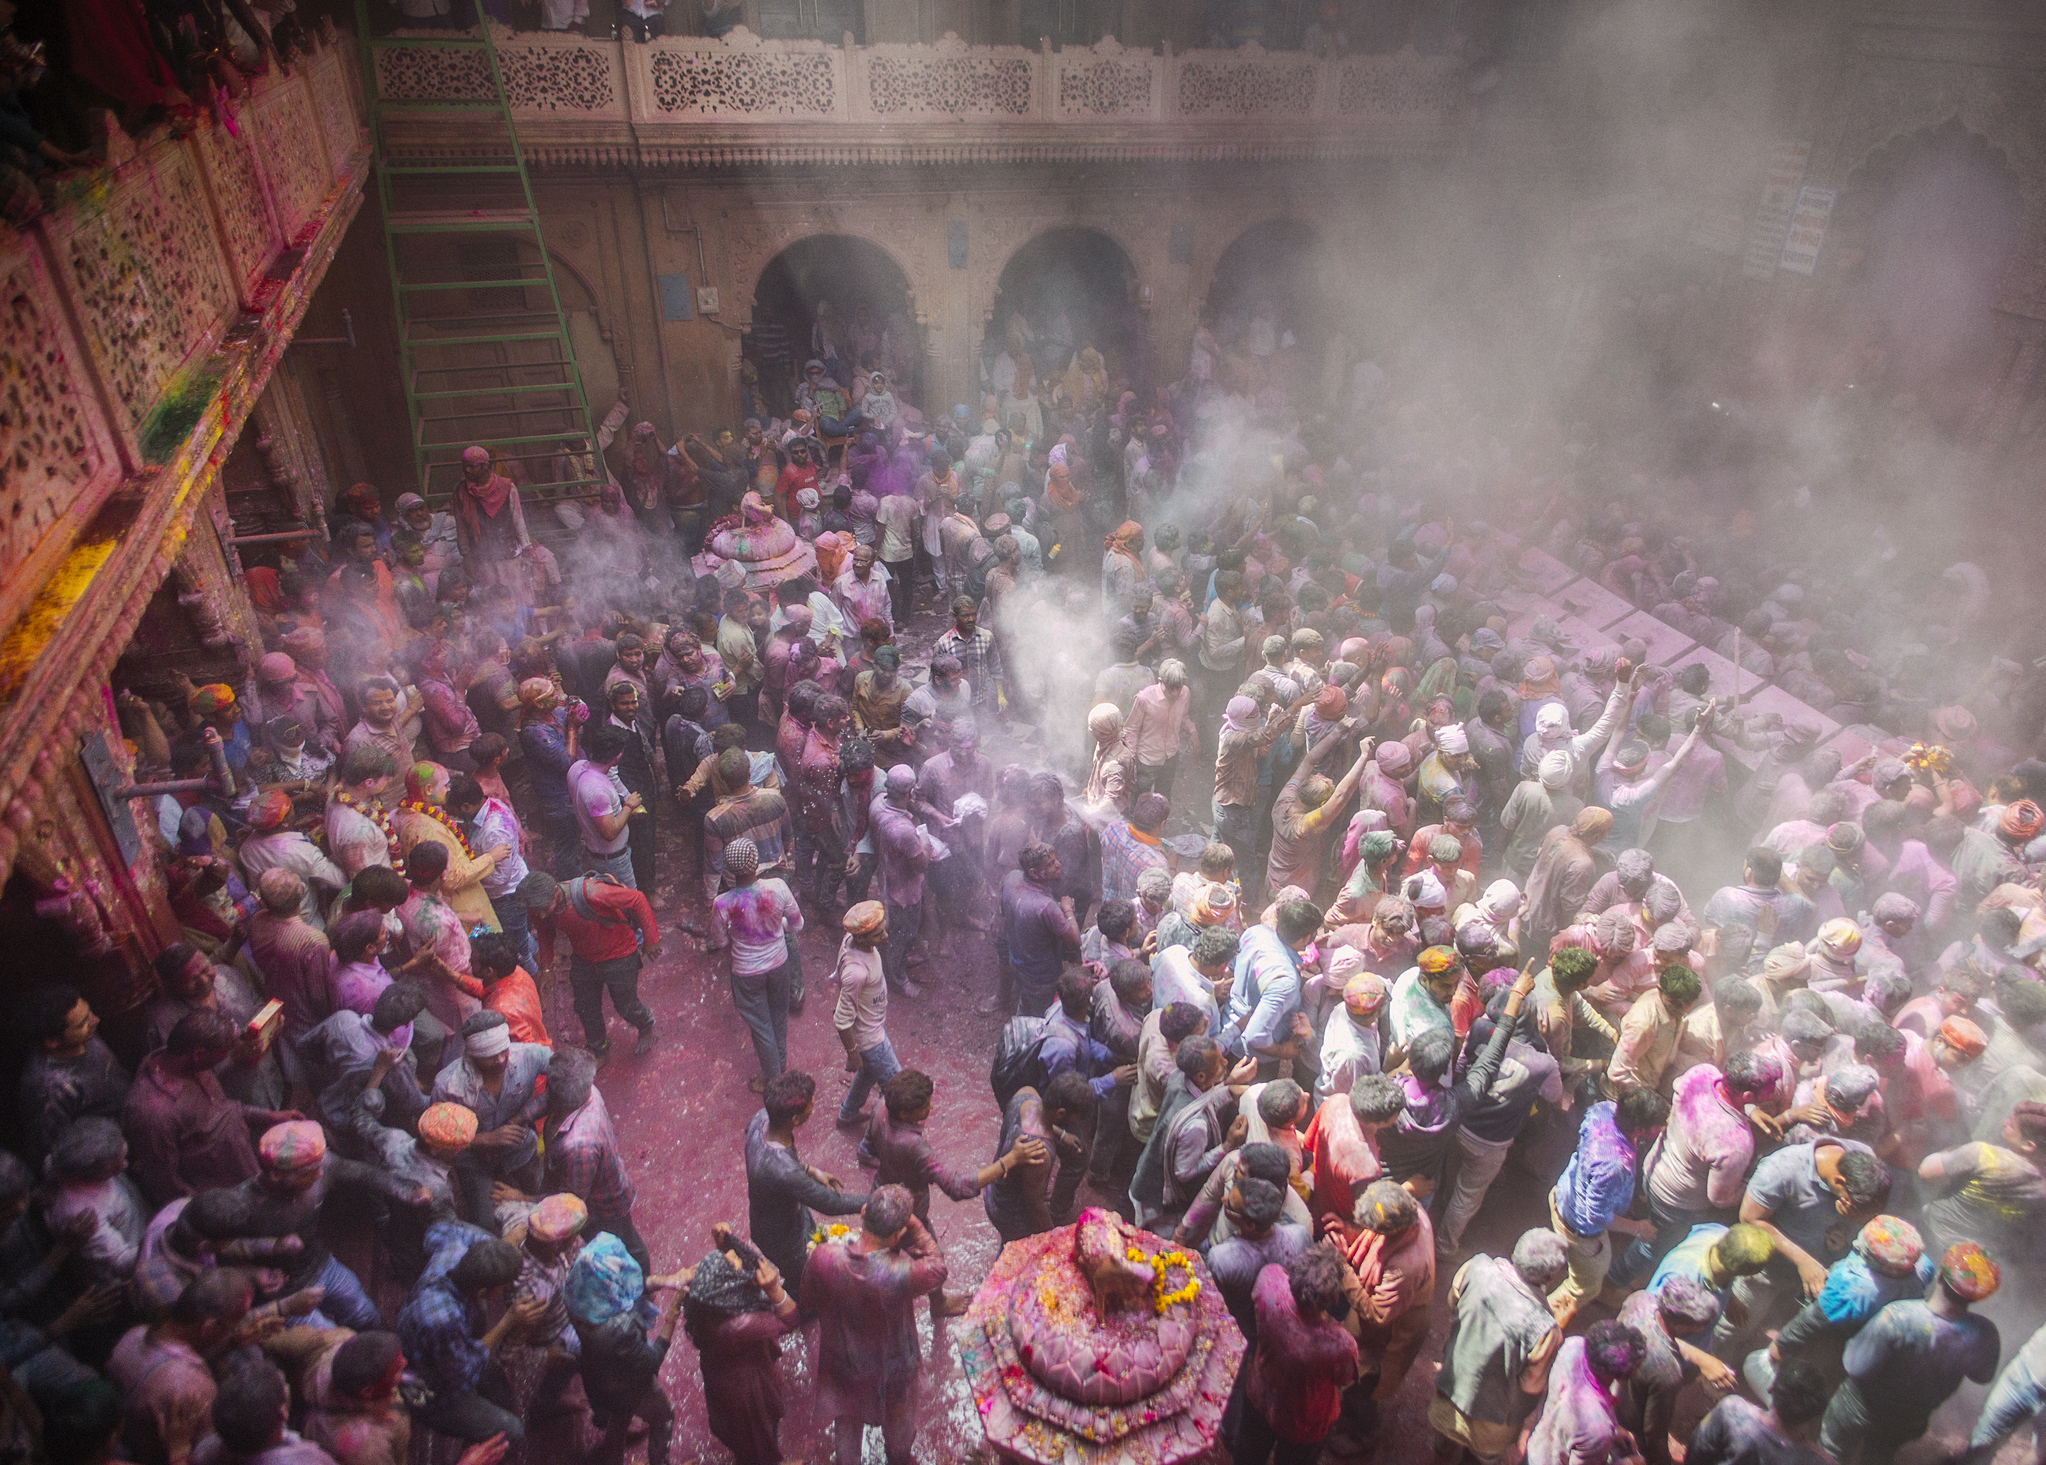 Revelers throw colored powder and spray each other with water at Banke Bihari Temple in Vrindavan, northern India. Banke Bihari is famous for its extravagant multi-day Holi celebrations, attracting thousands of pilgrims and spectators from the rest of the country.